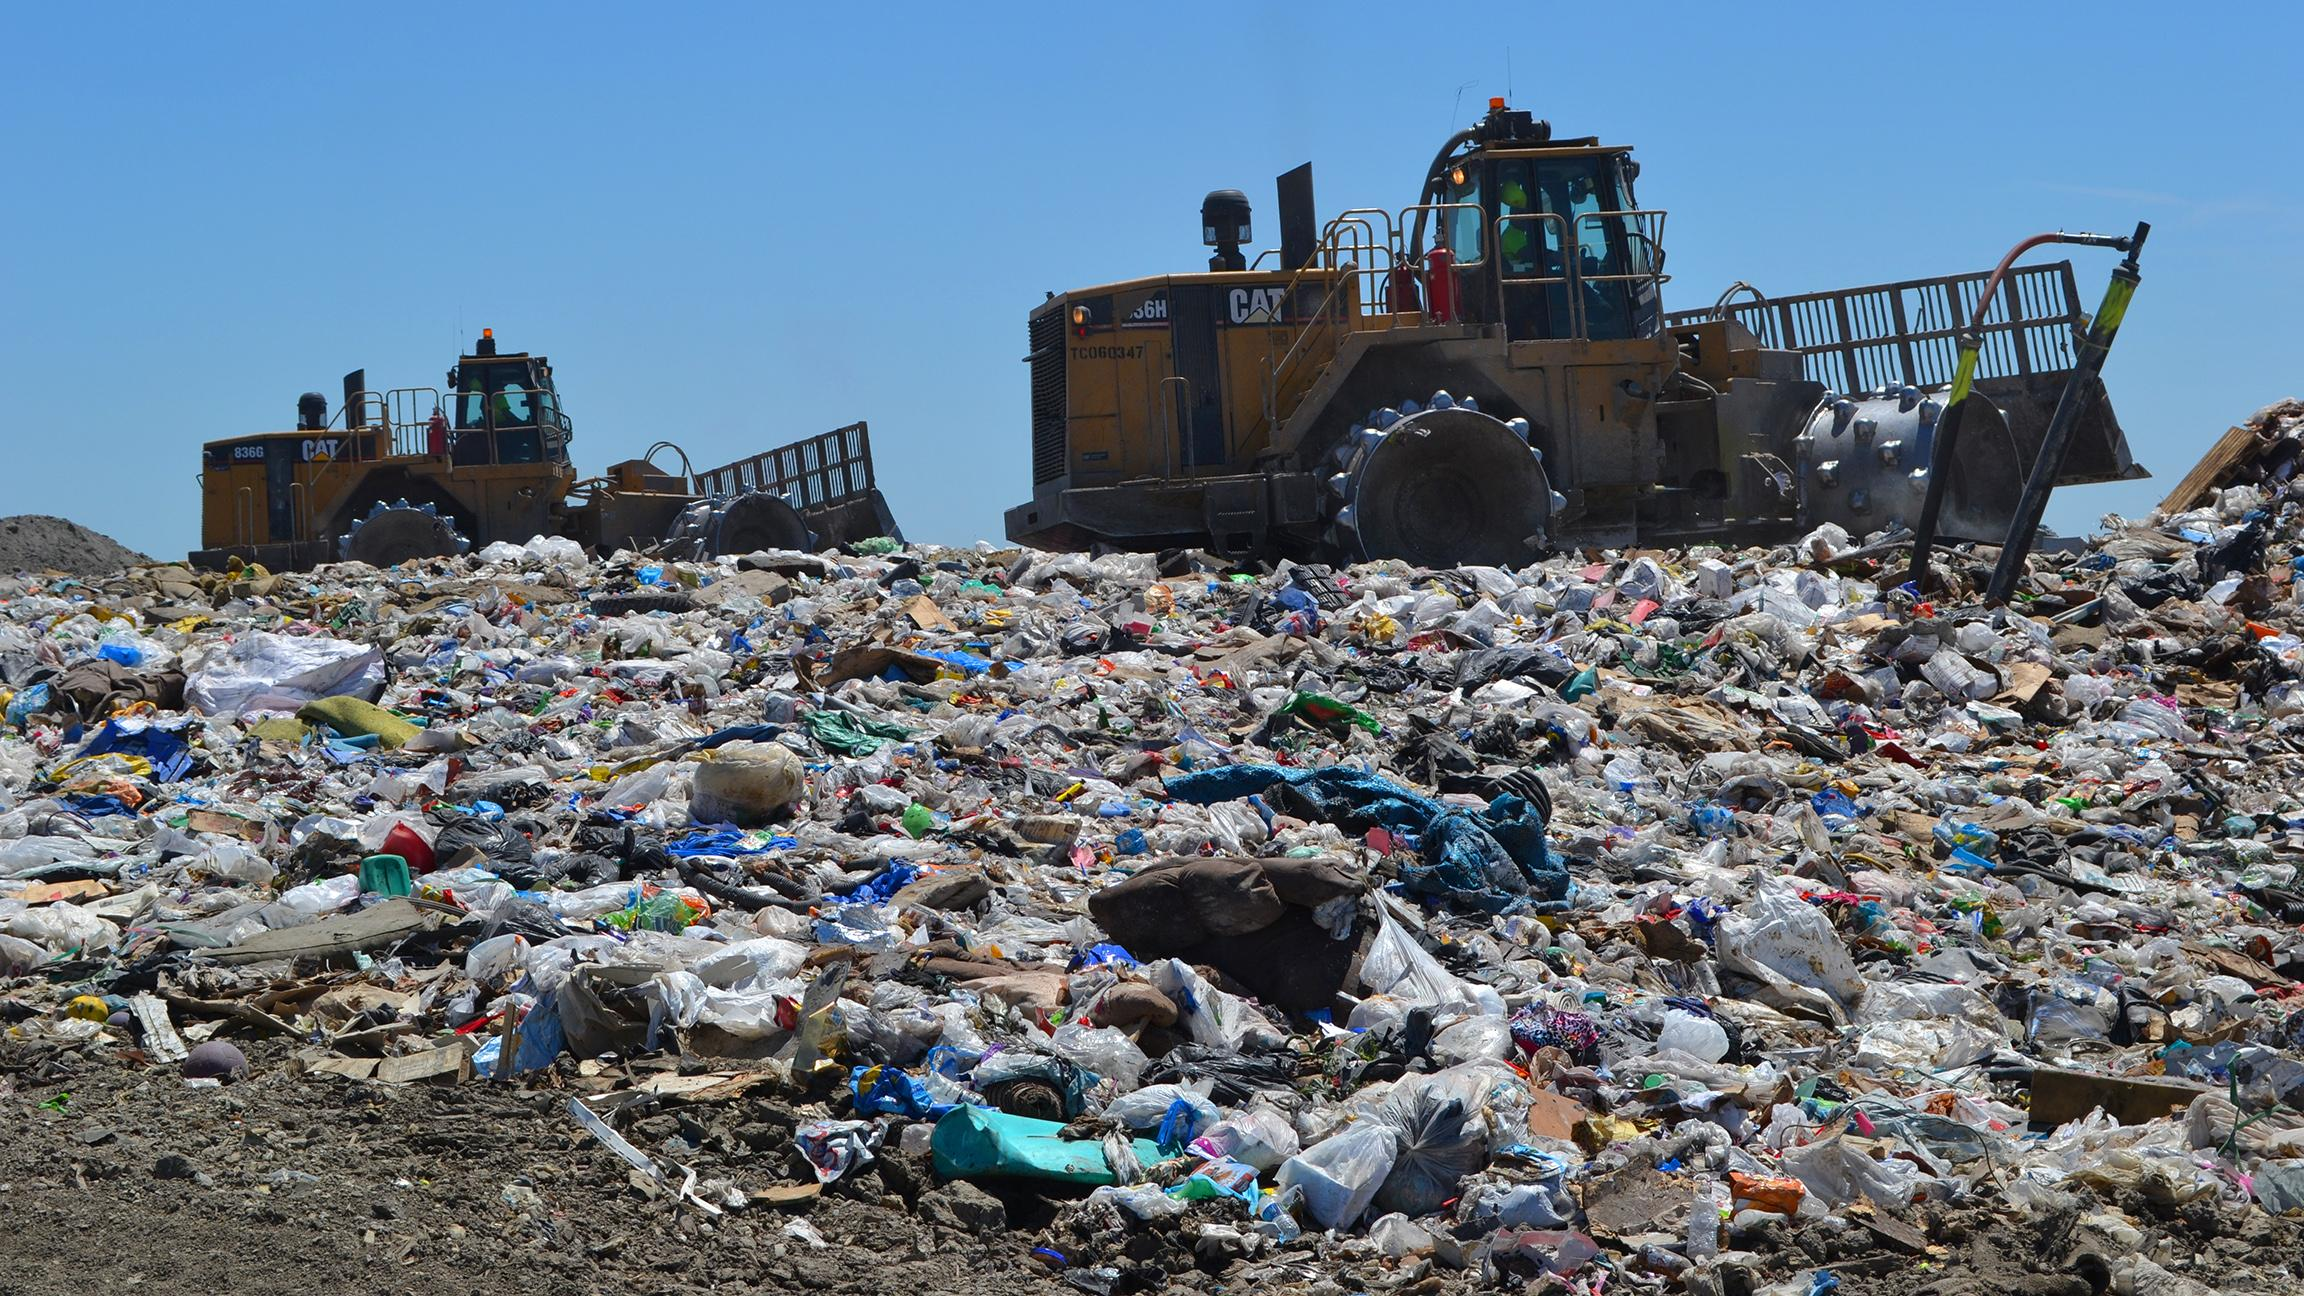 South County Sanitary Service : Turning trash into fuel reduces need for landfills study